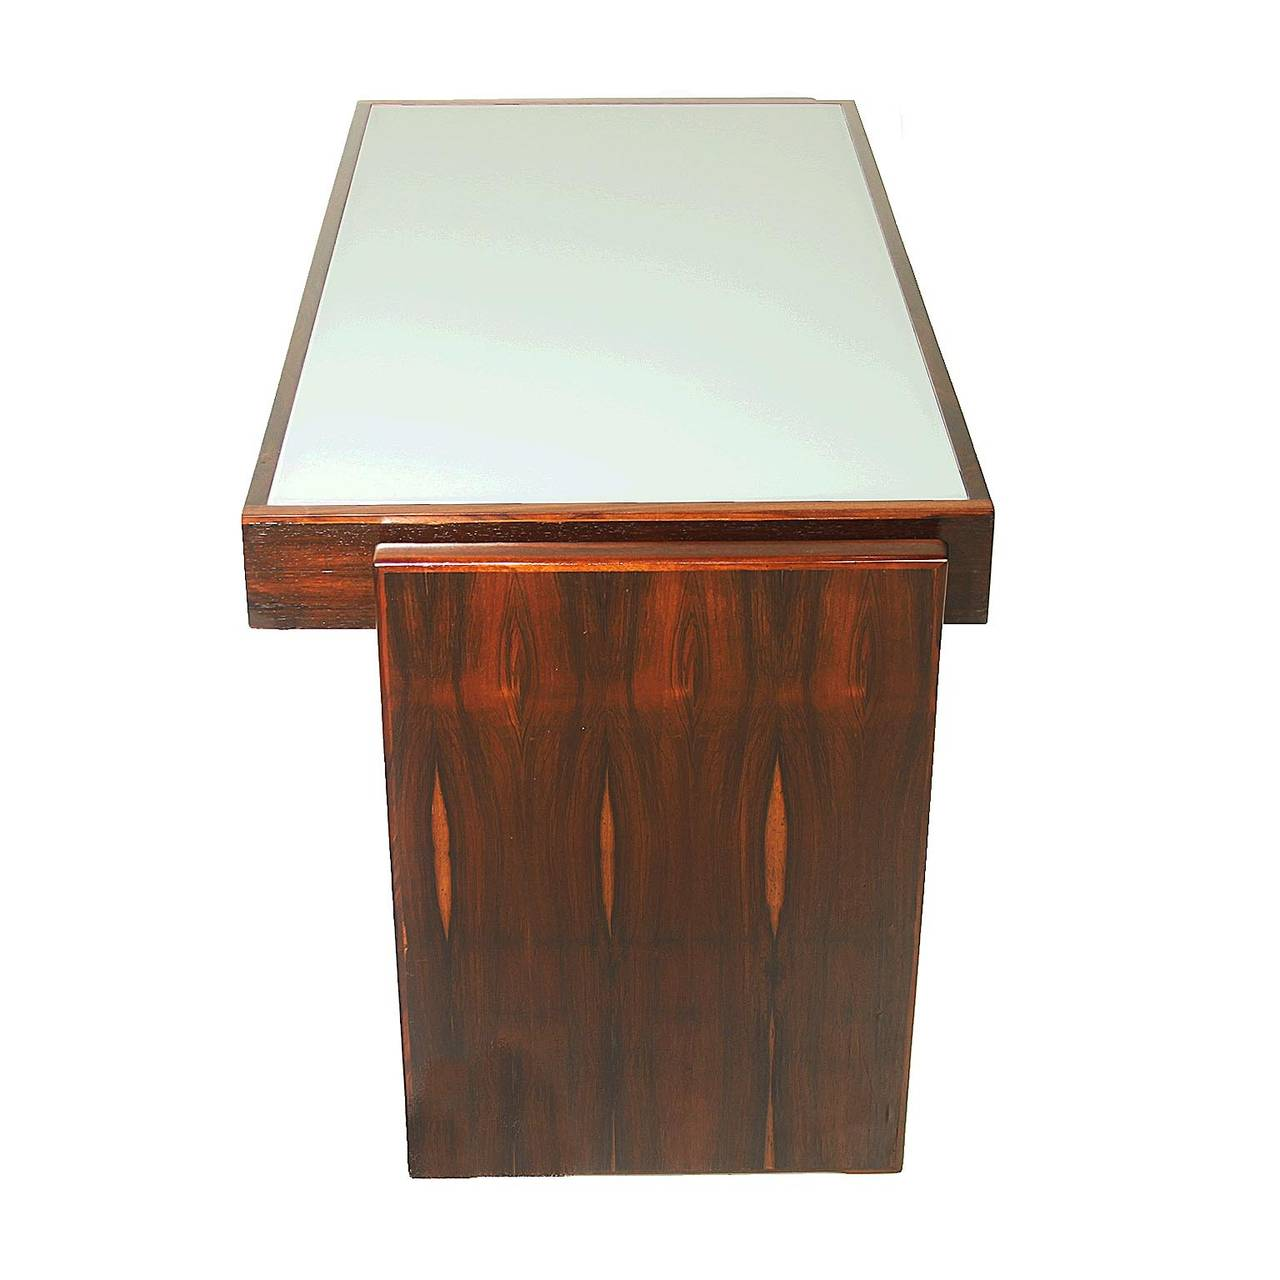 "Mid-Century Modern Joaquim Tenreiro ""Bloch"" Desk with Reverse Painted Glass For Sale"